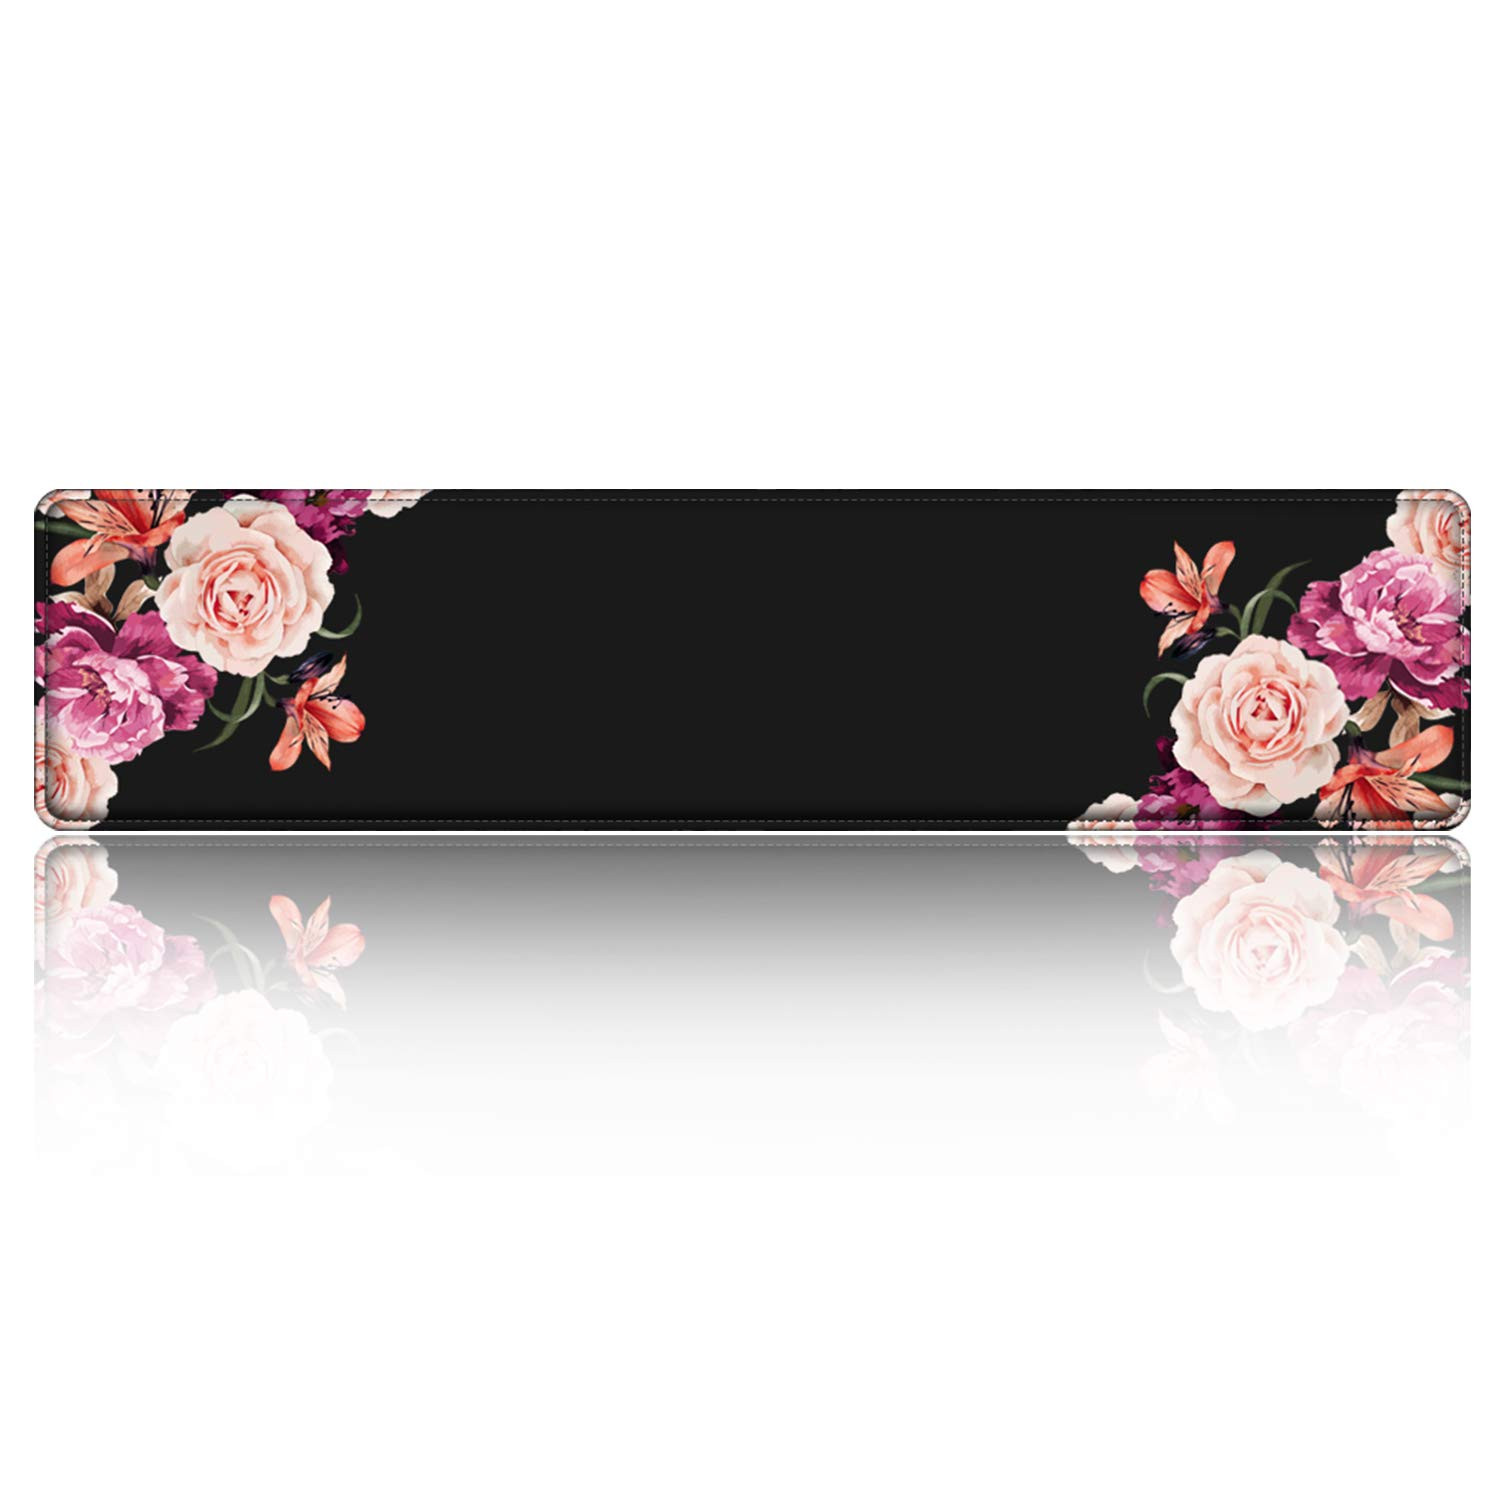 iLeadon Keyboard Wrist Rest Pad, Ergonomic Wrist Support with High Density Memory Foam & Stitched Edges, 16.5 x 3.5-inch 1.8cm Thick for Gaming Working Typing Wrist Pain Pressure Ease, Peony Flower